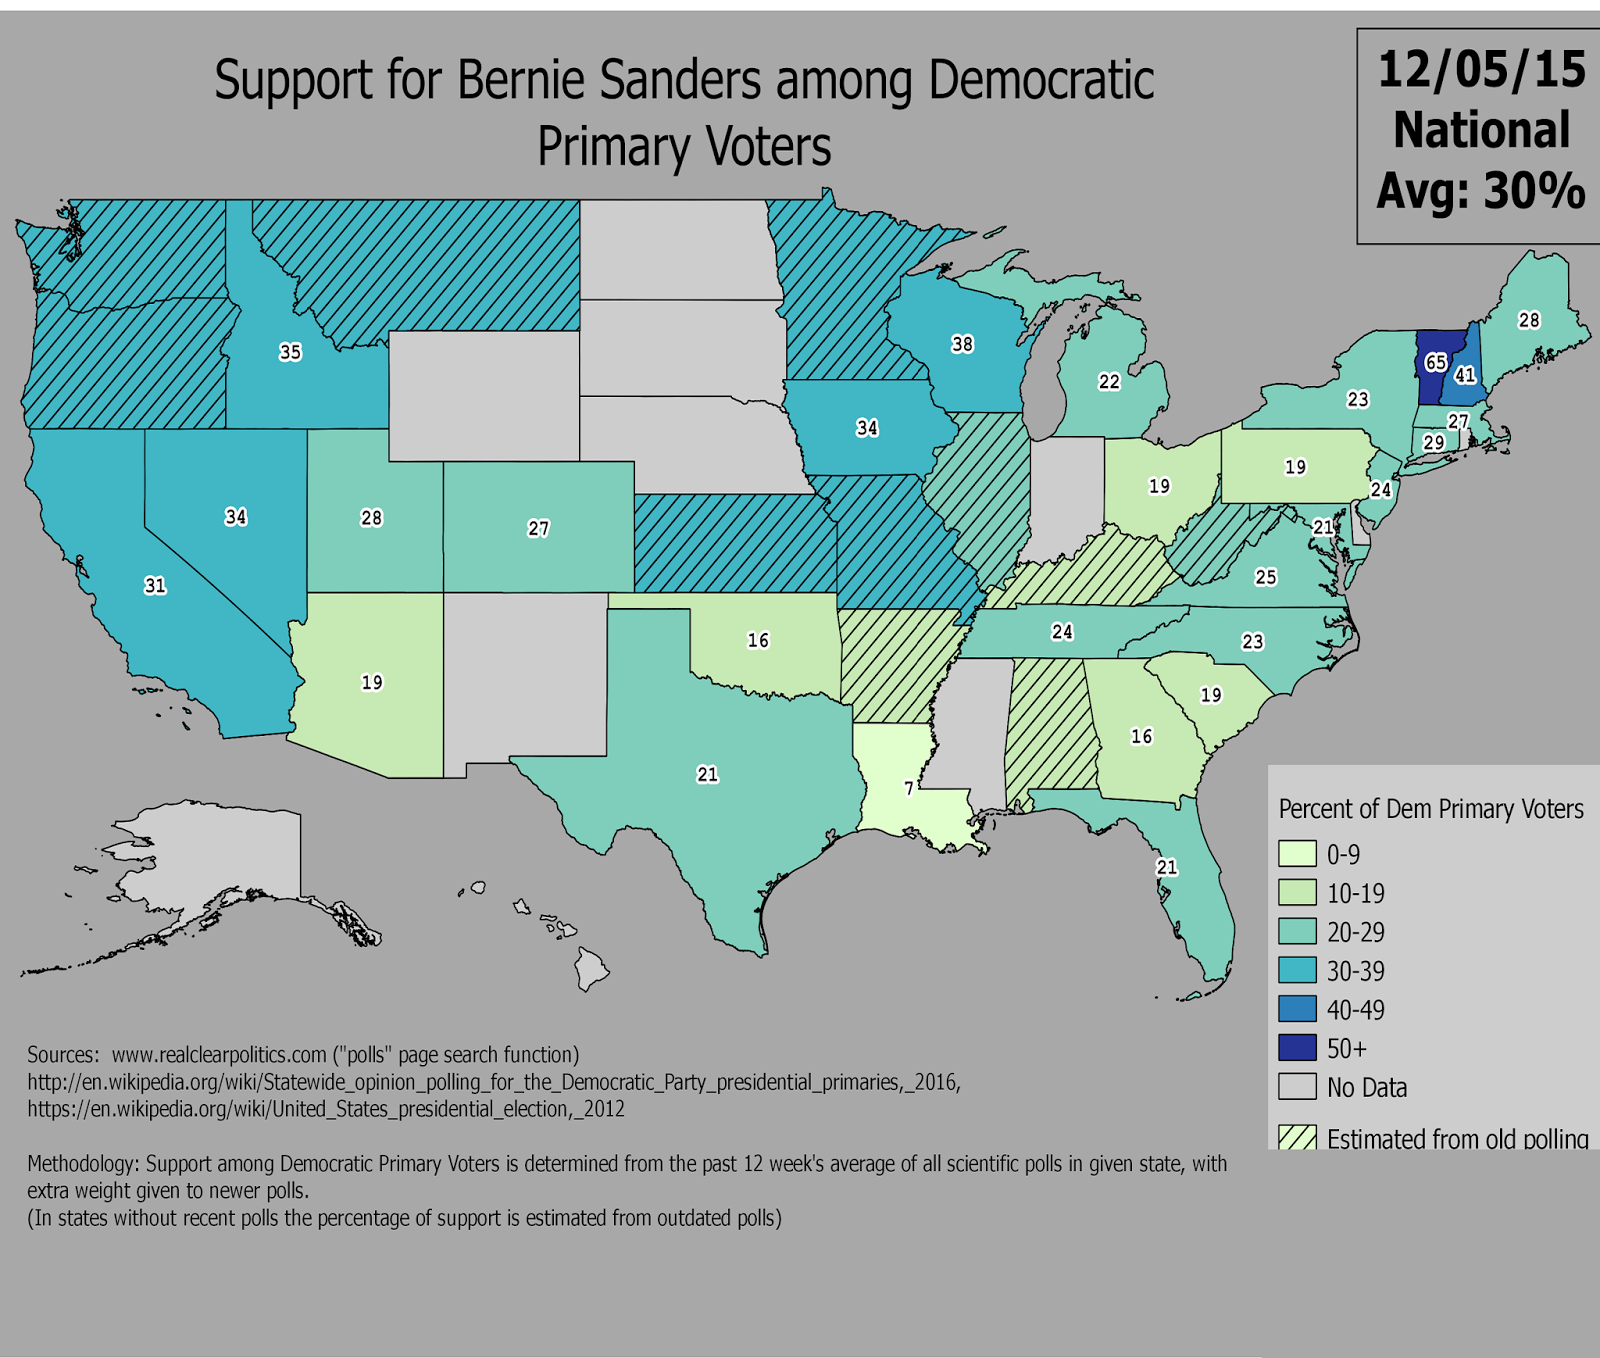 support for bernie sanders among democratic primary voters through 12 05